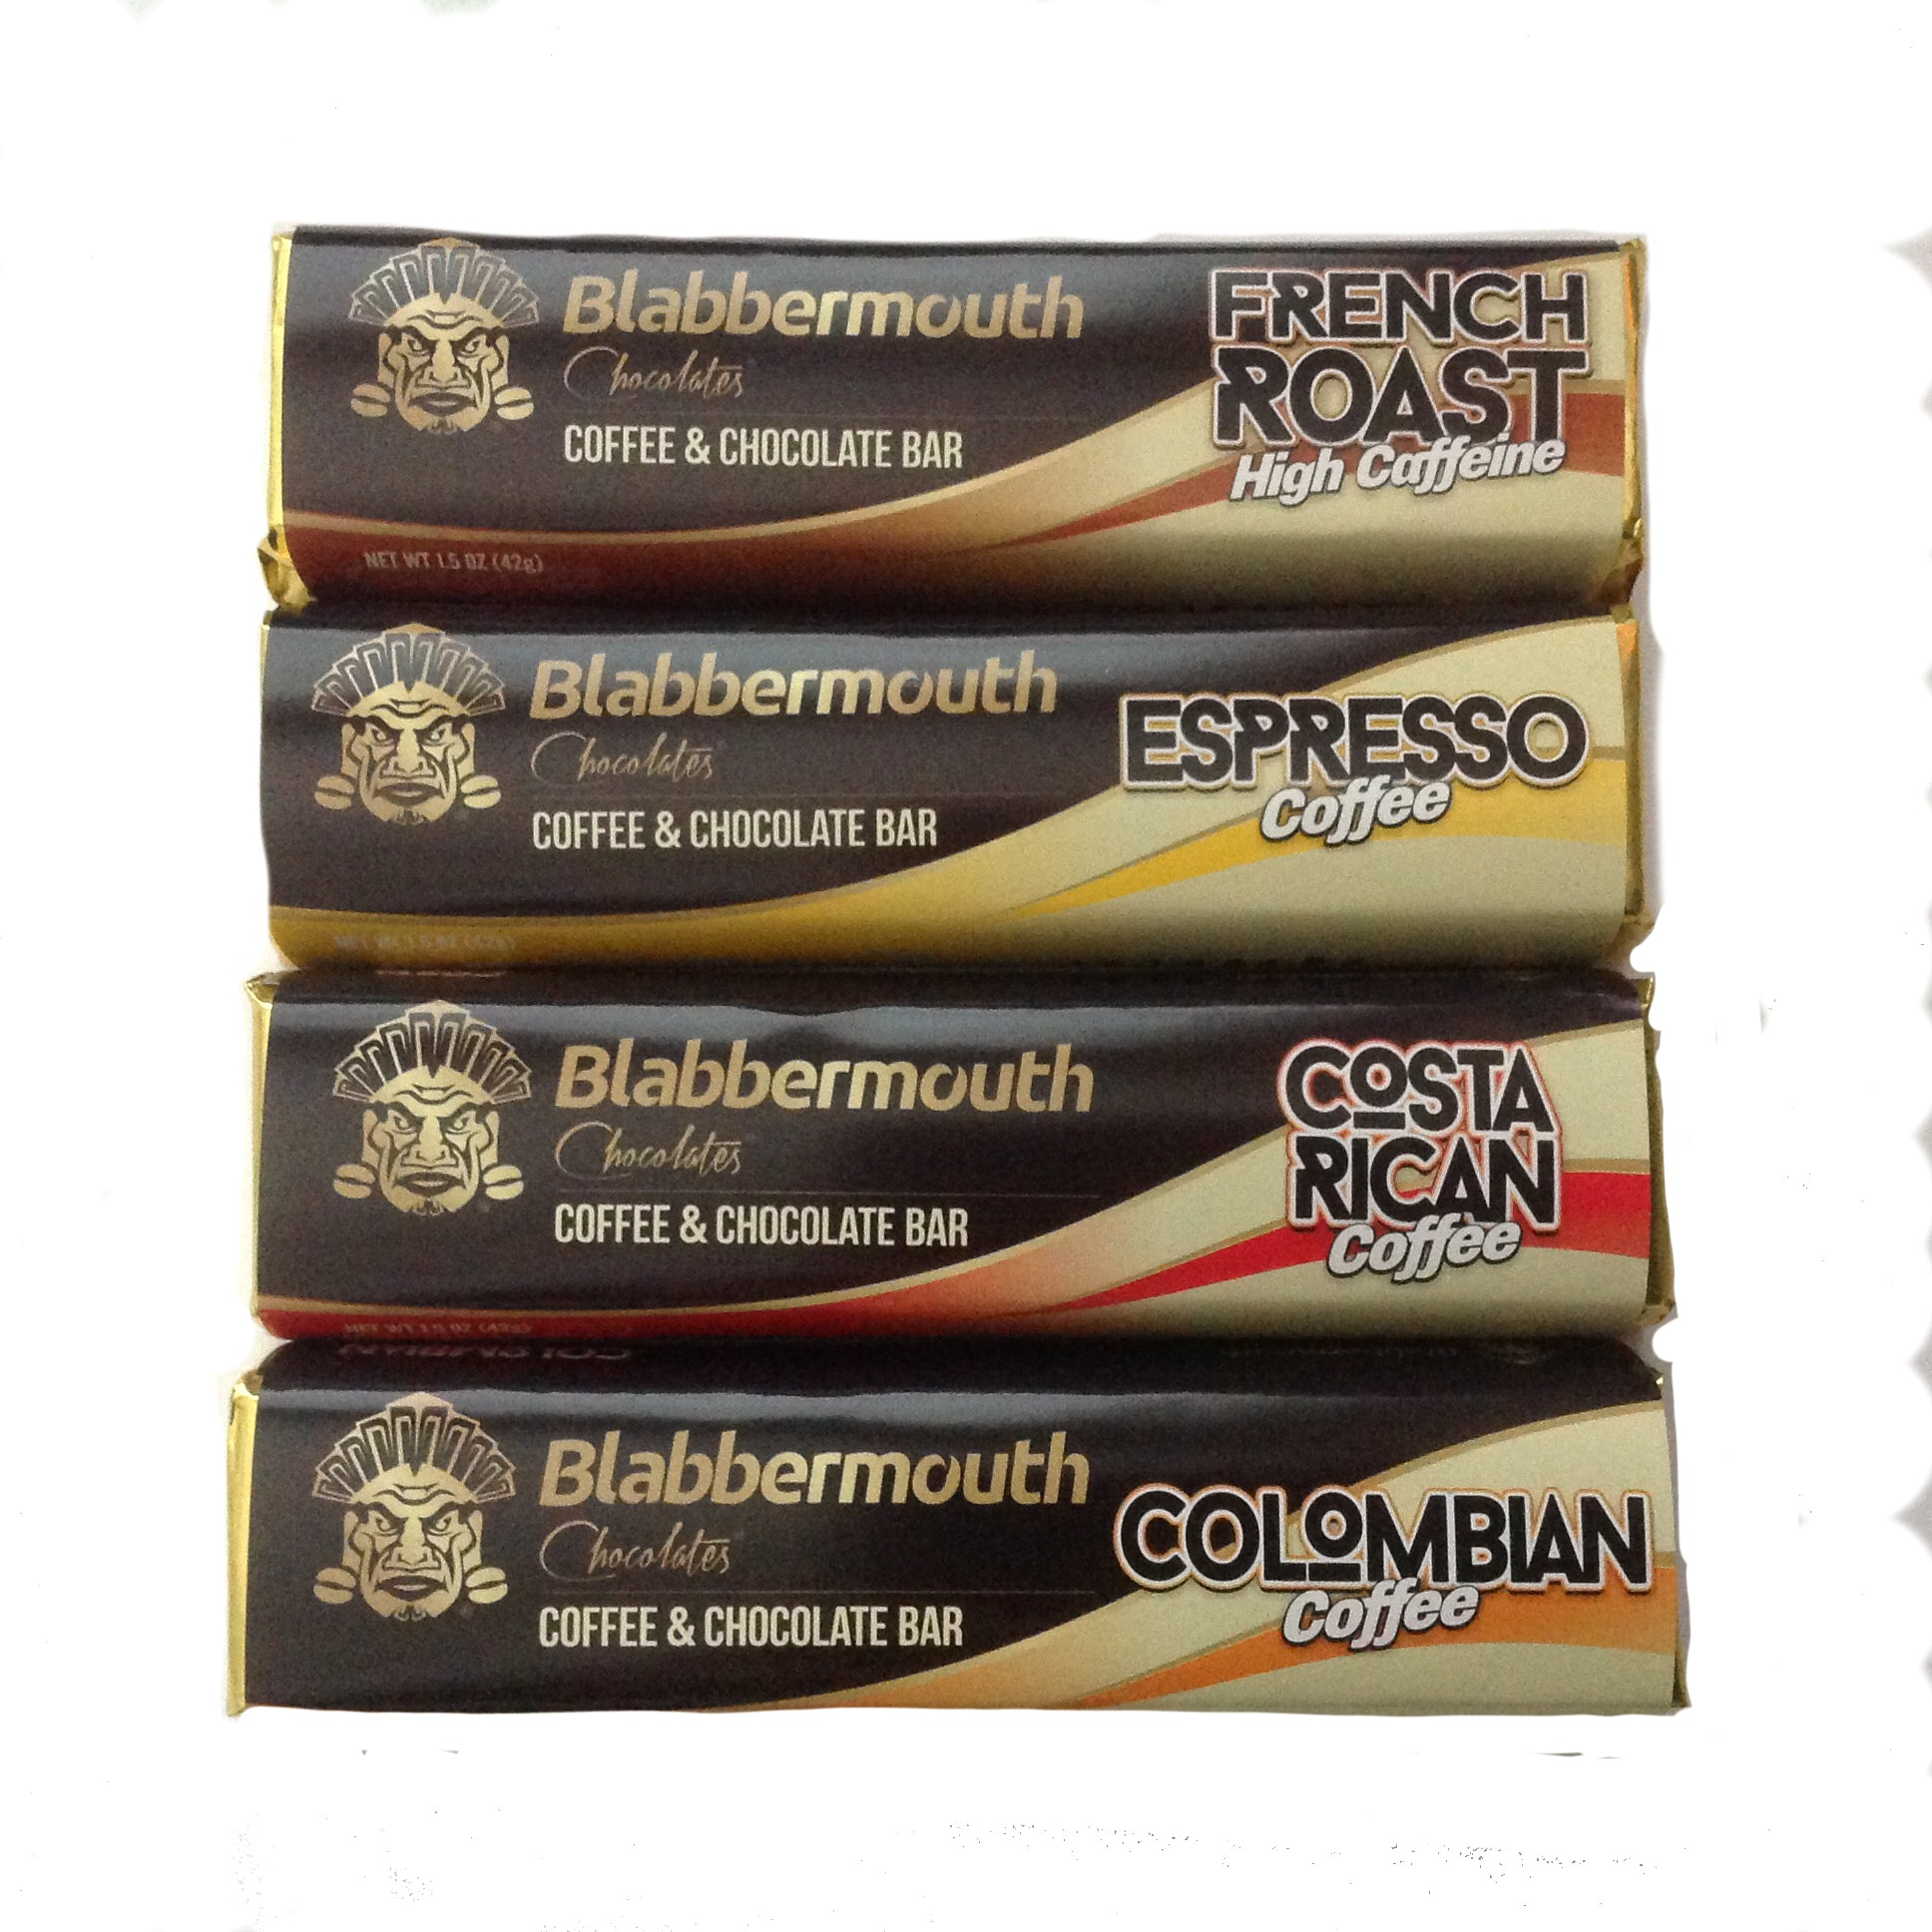 Blabbermouth Chocolates